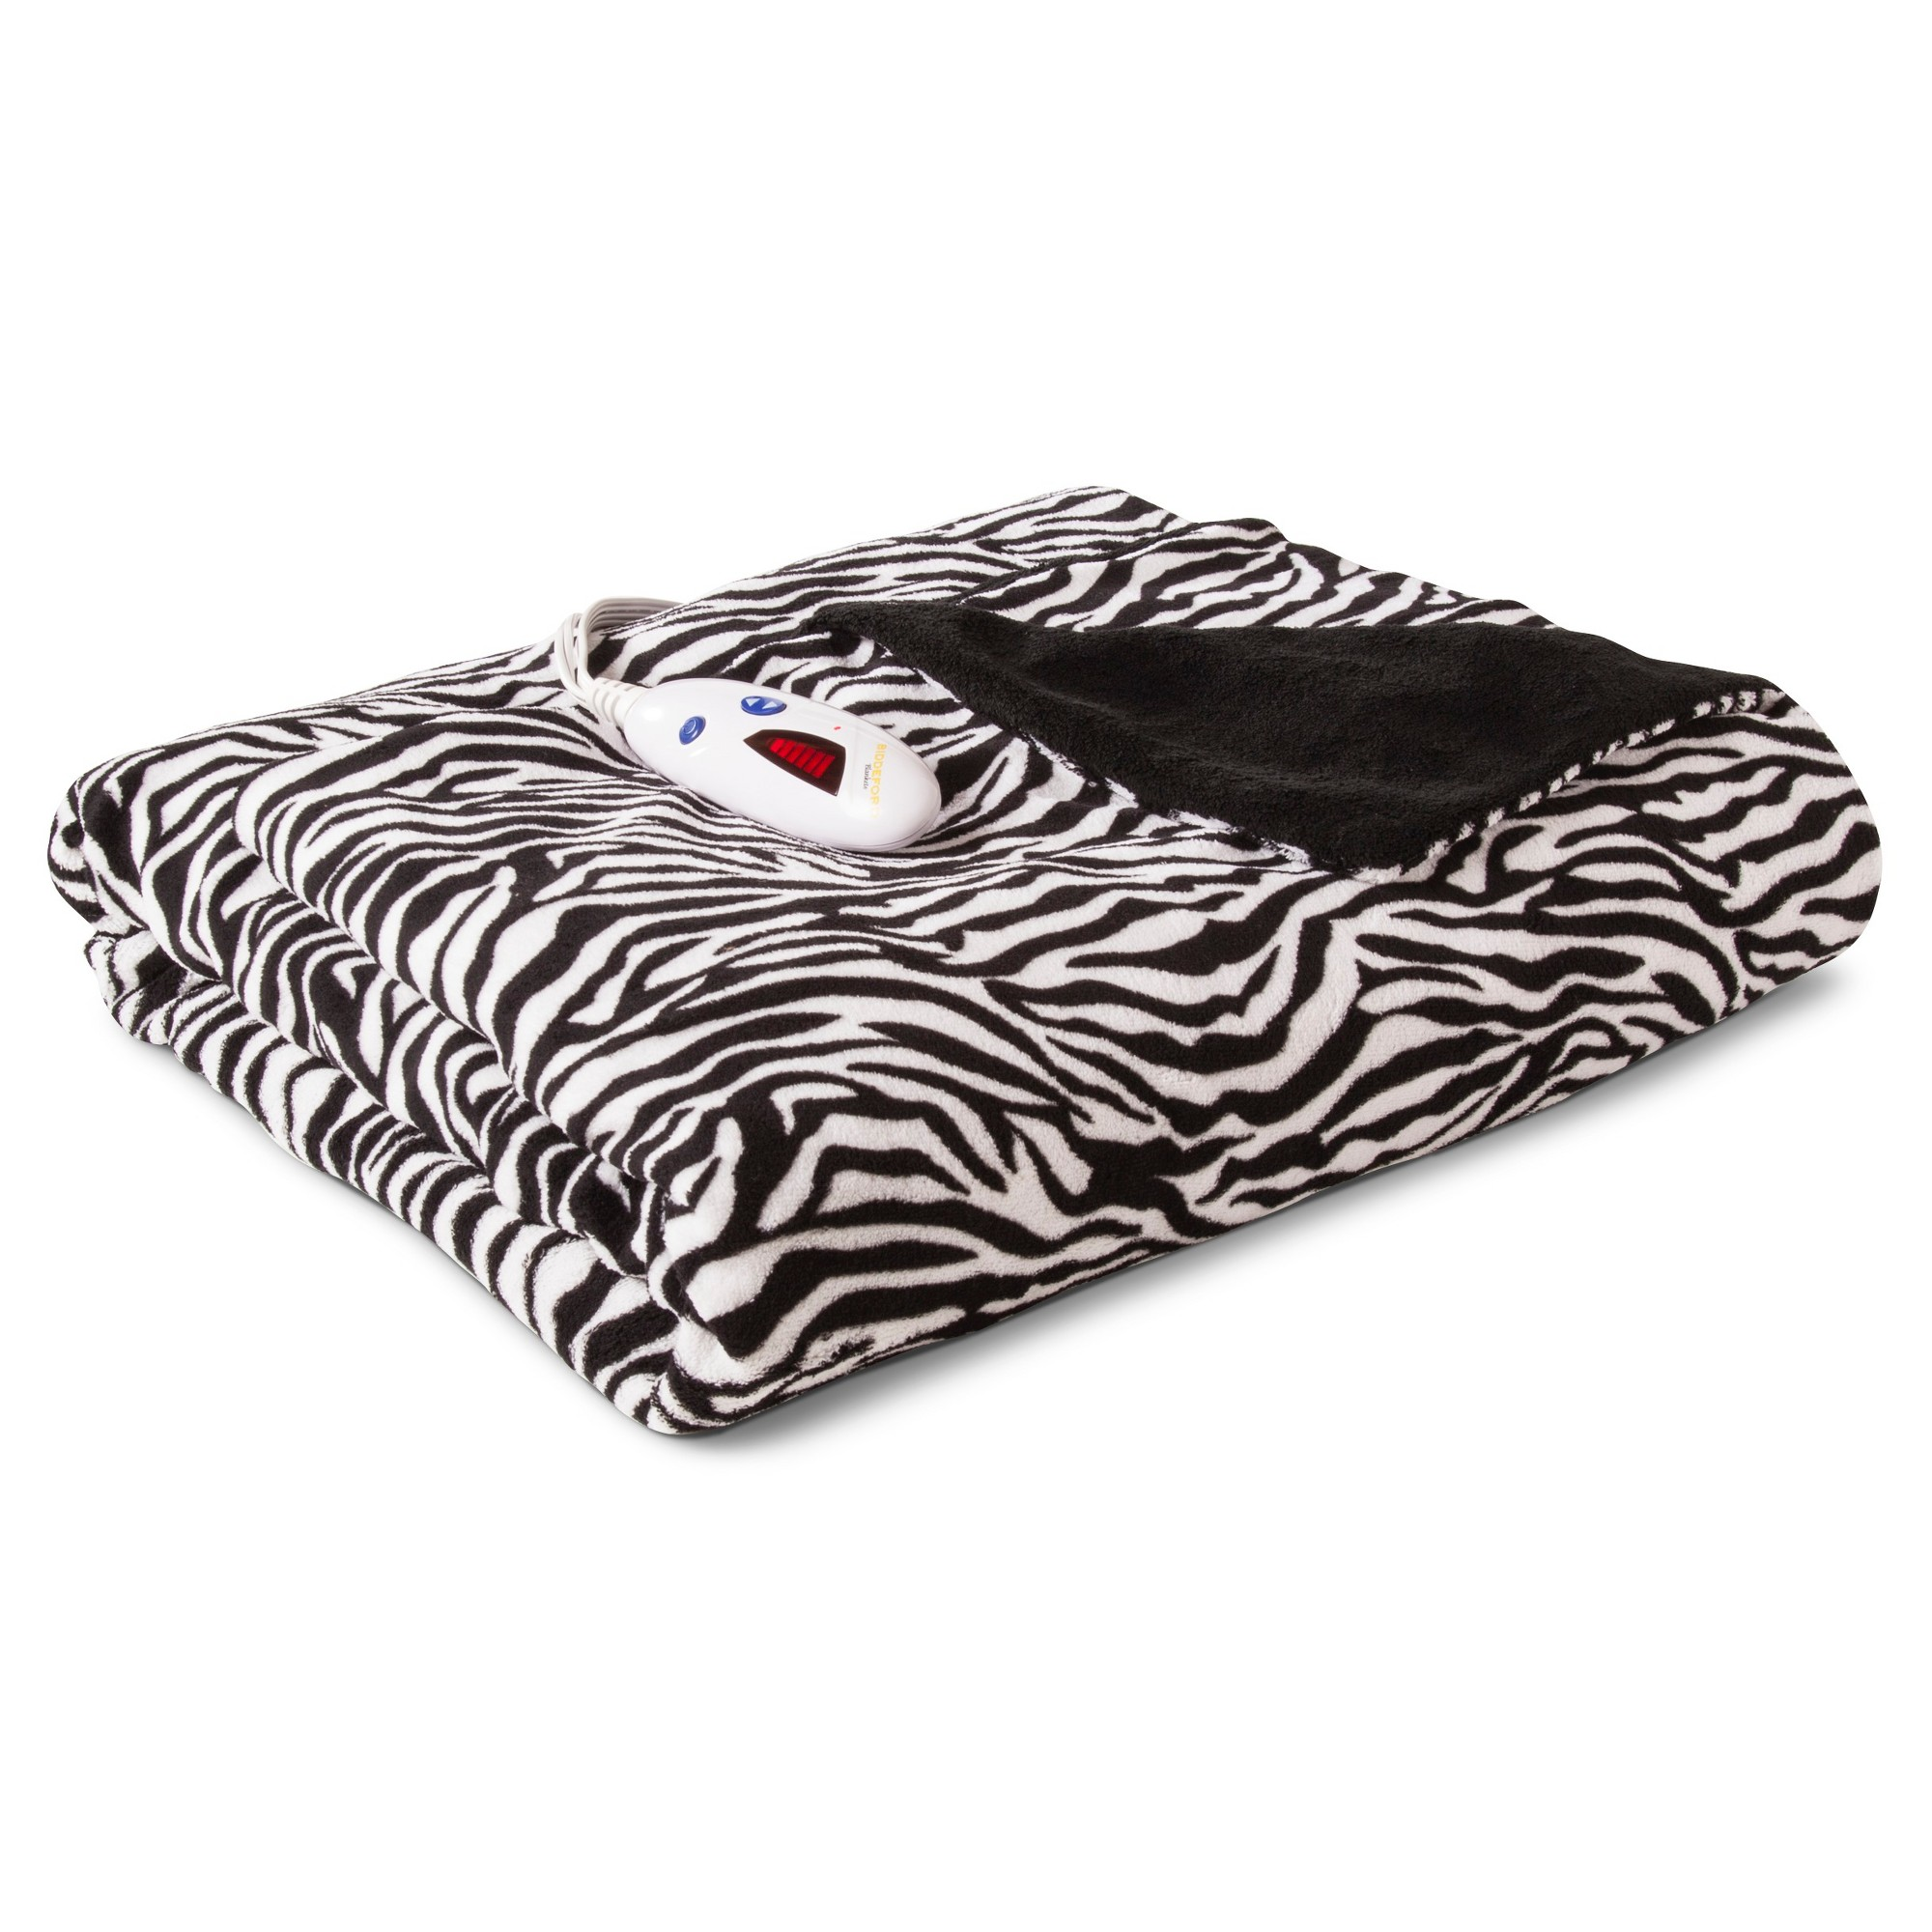 Biddeford Microplush Heated Throw Zebra Products